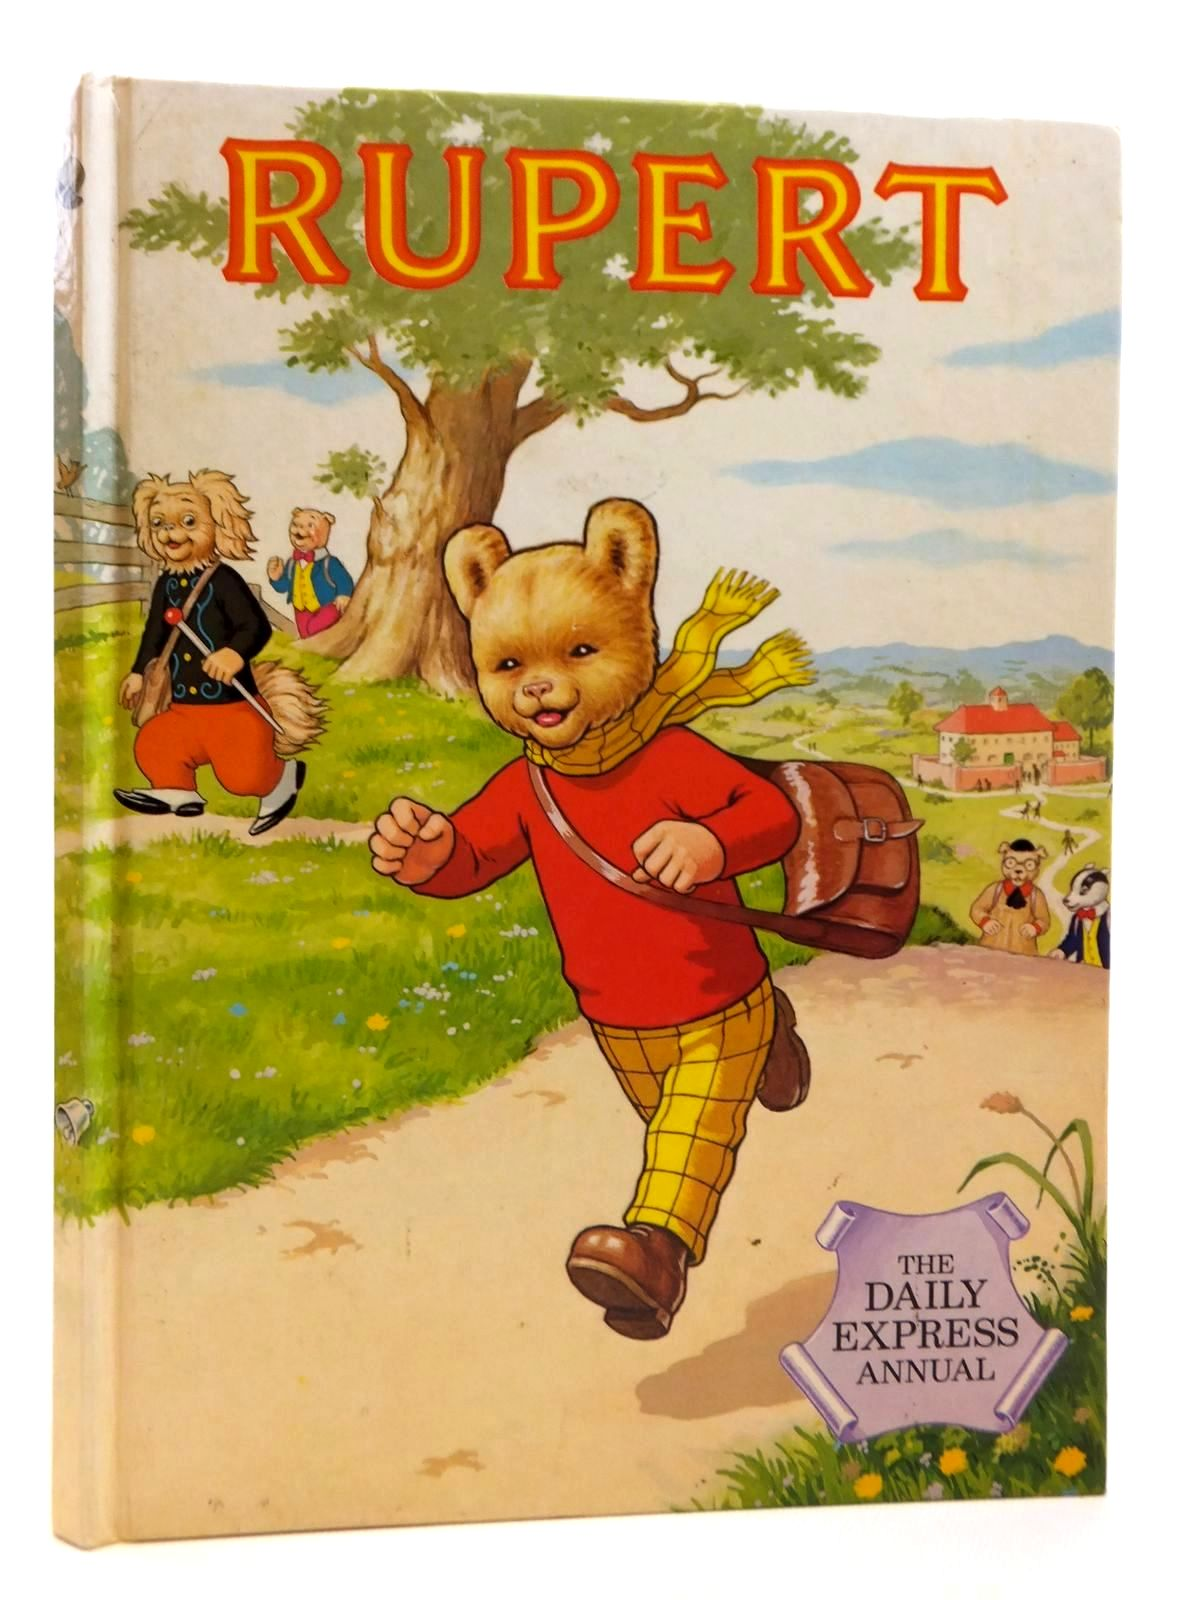 Photo of RUPERT ANNUAL 1984 illustrated by Harrold, John published by Express Newspapers Ltd. (STOCK CODE: 1608220)  for sale by Stella & Rose's Books